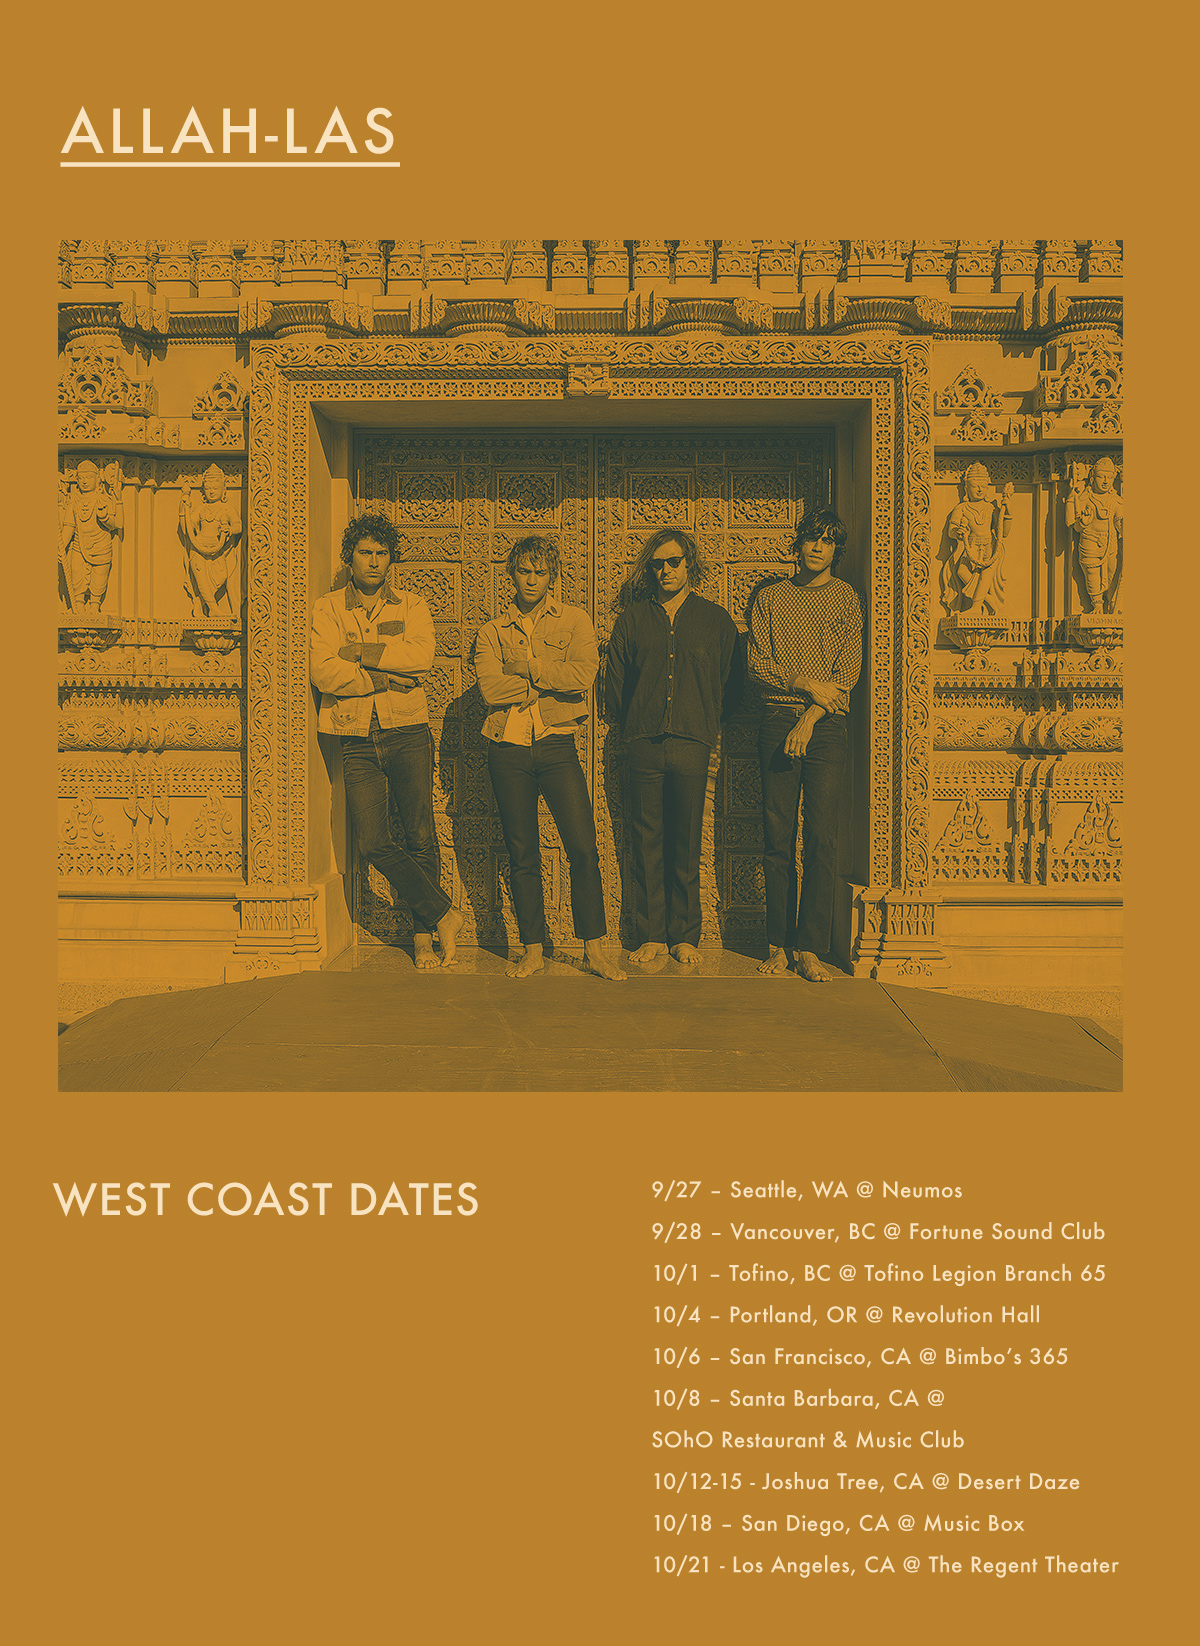 Allah-Las Tour Dates